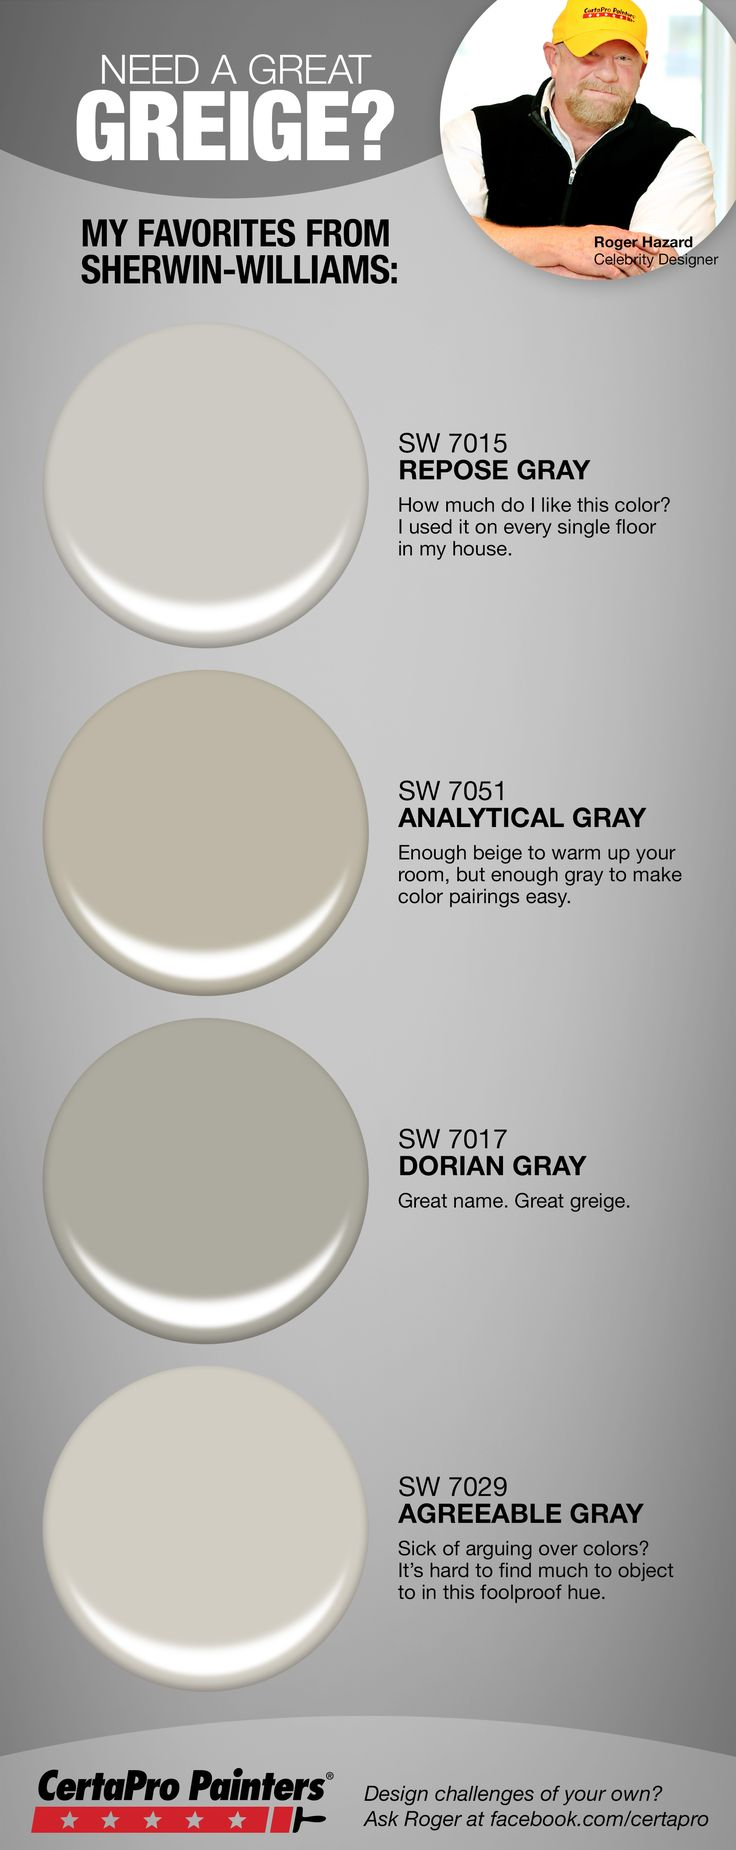 203 best images about beige greige on pinterest taupe for Color gray or grey